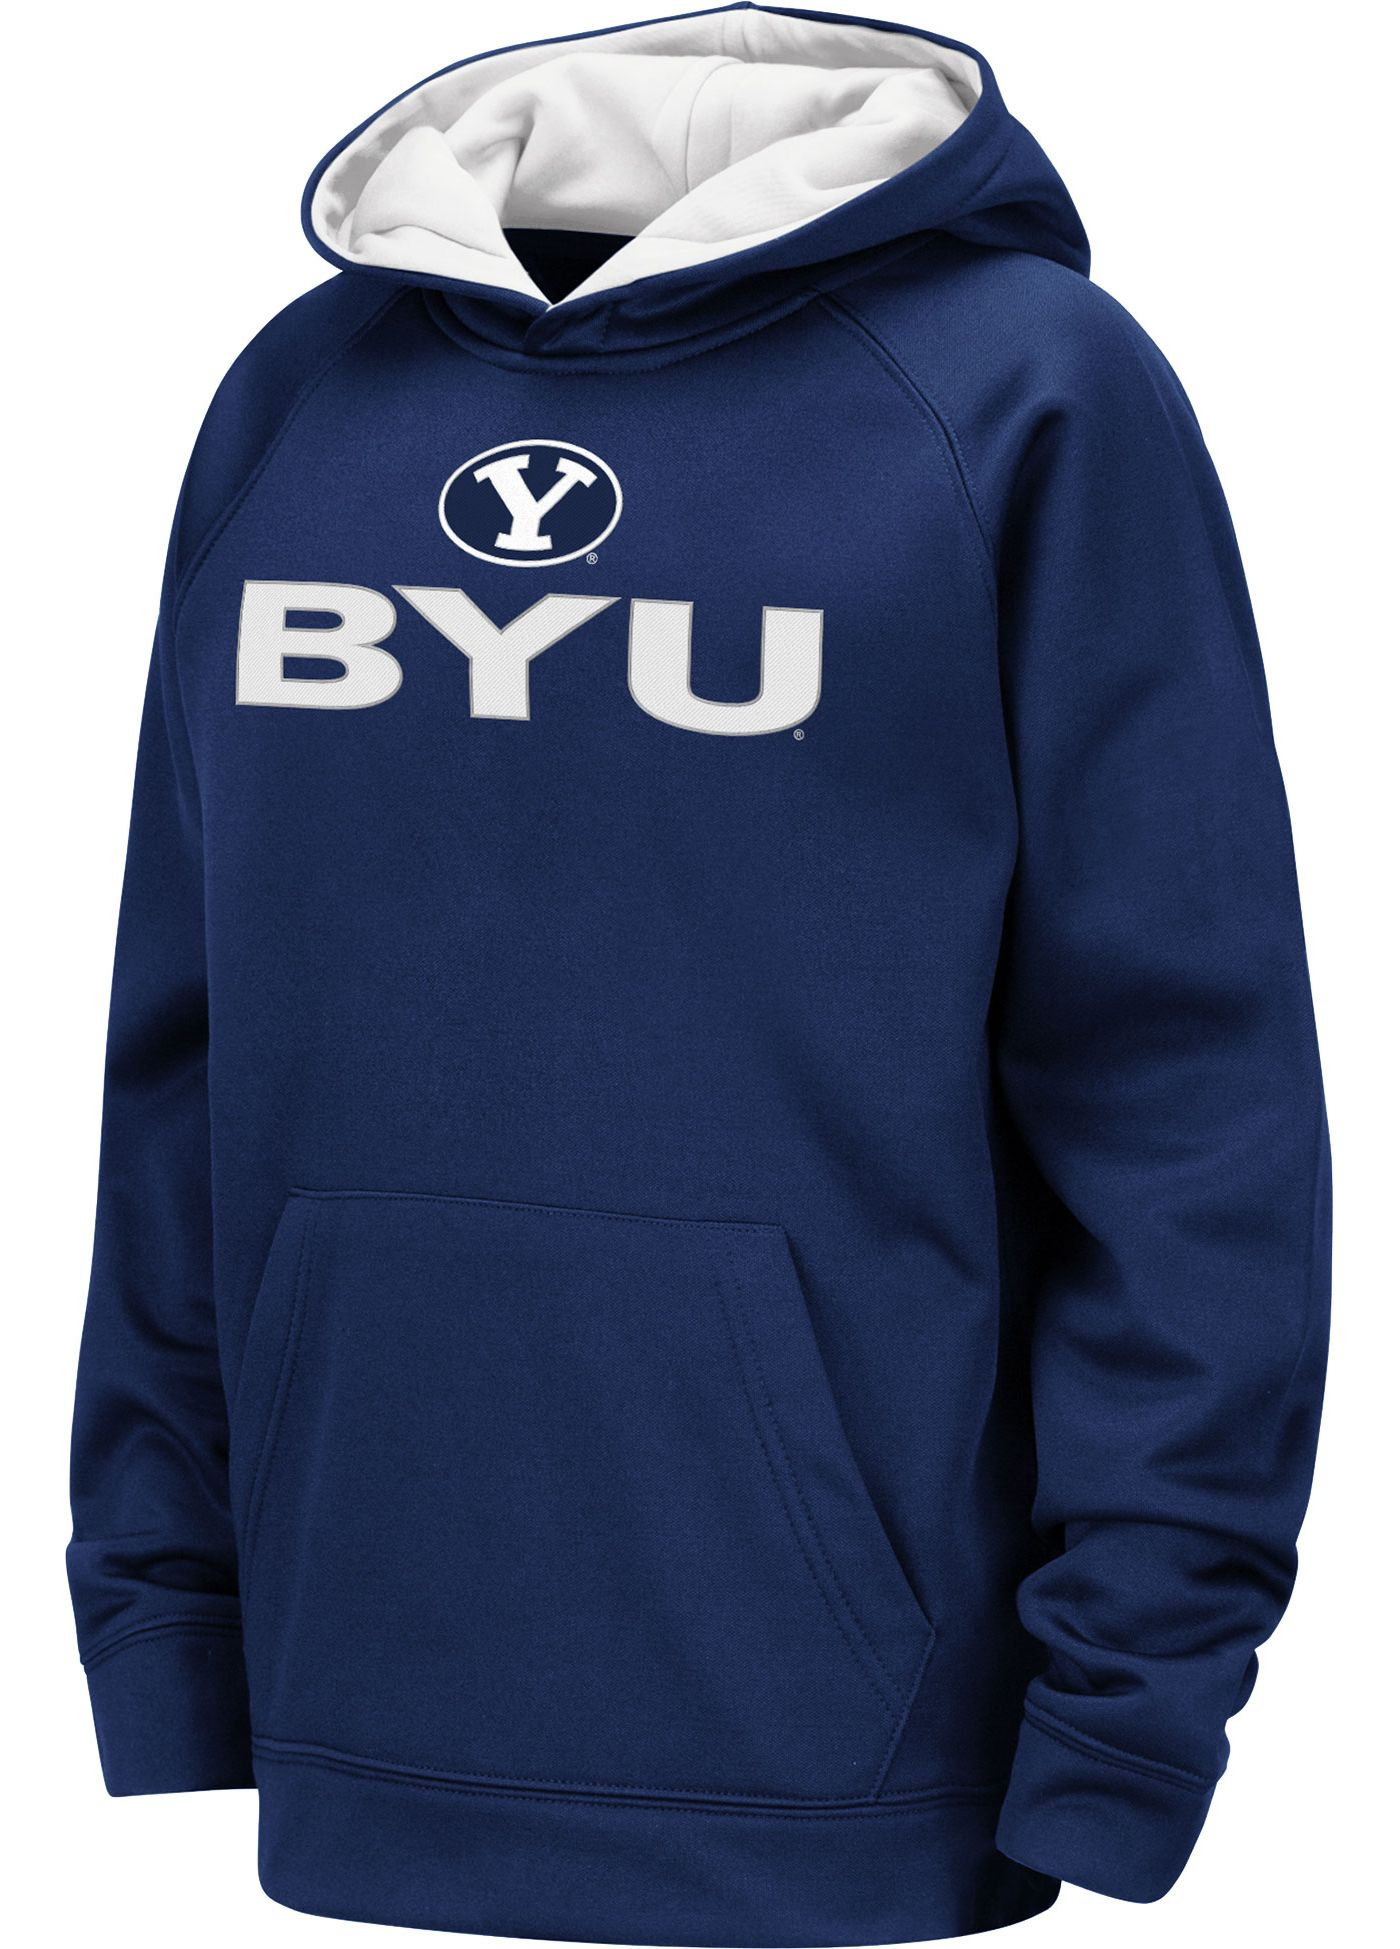 Colosseum Youth BYU Cougars Blue Pullover Hoodie